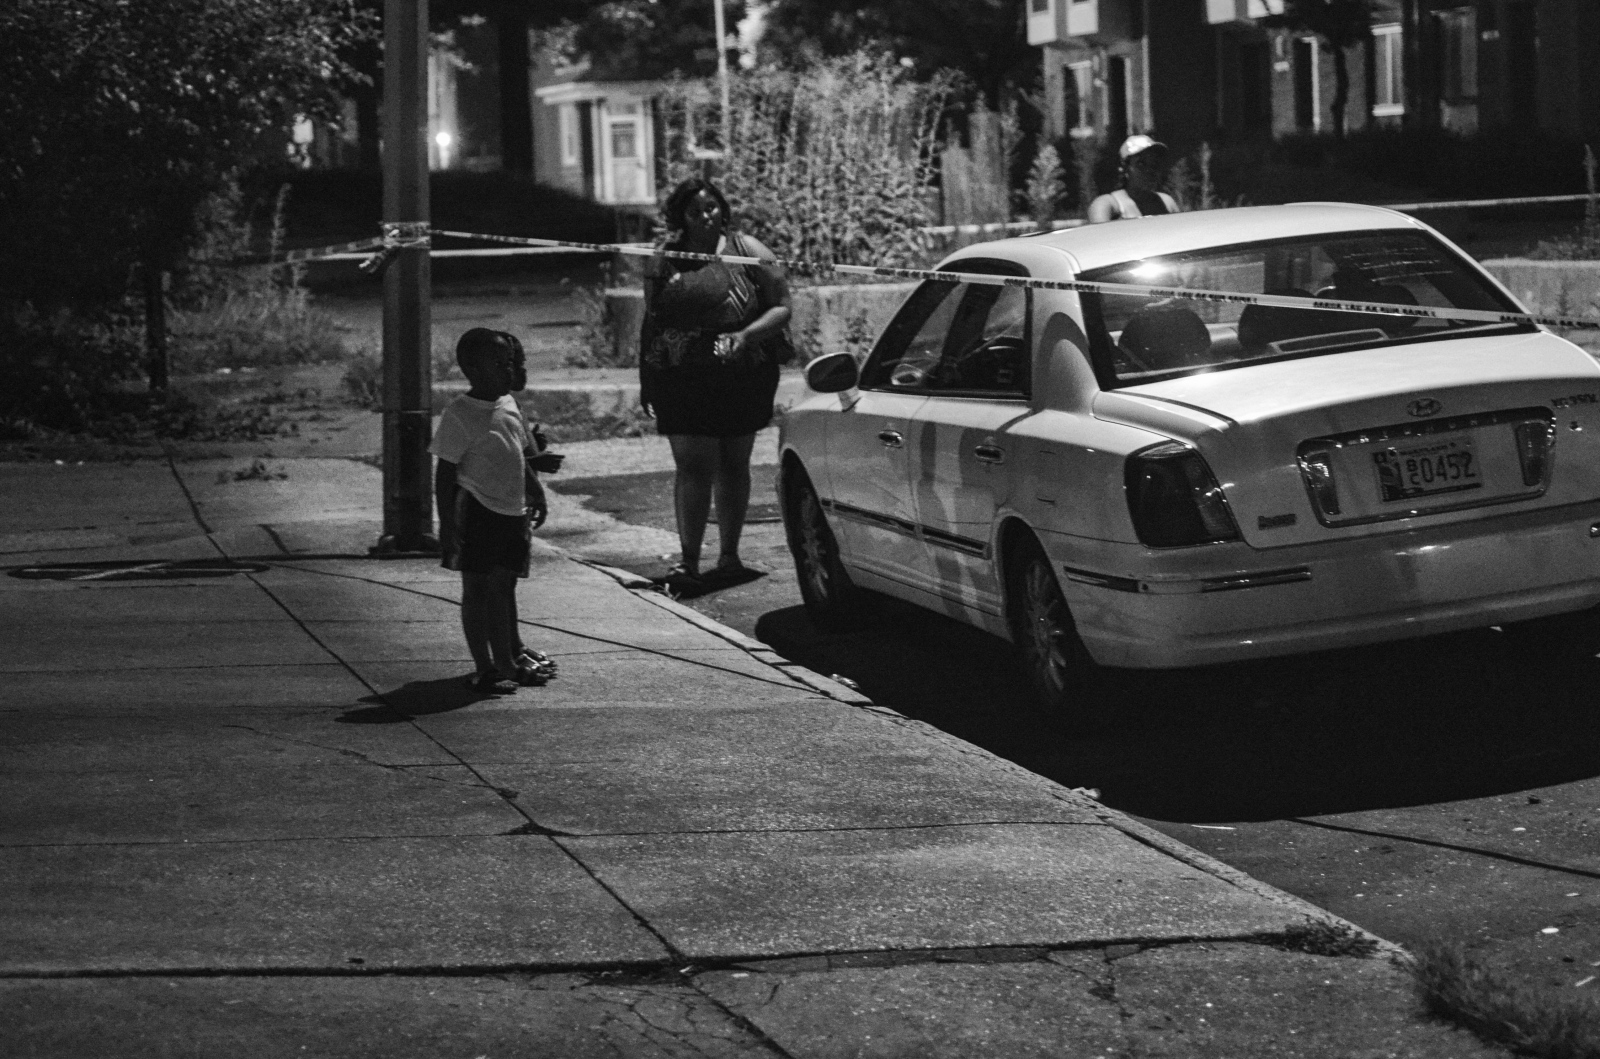 A child stops to look at a car involved in a late night shooting in the 1400 block of Ashland Avenue on July 28, 2013.